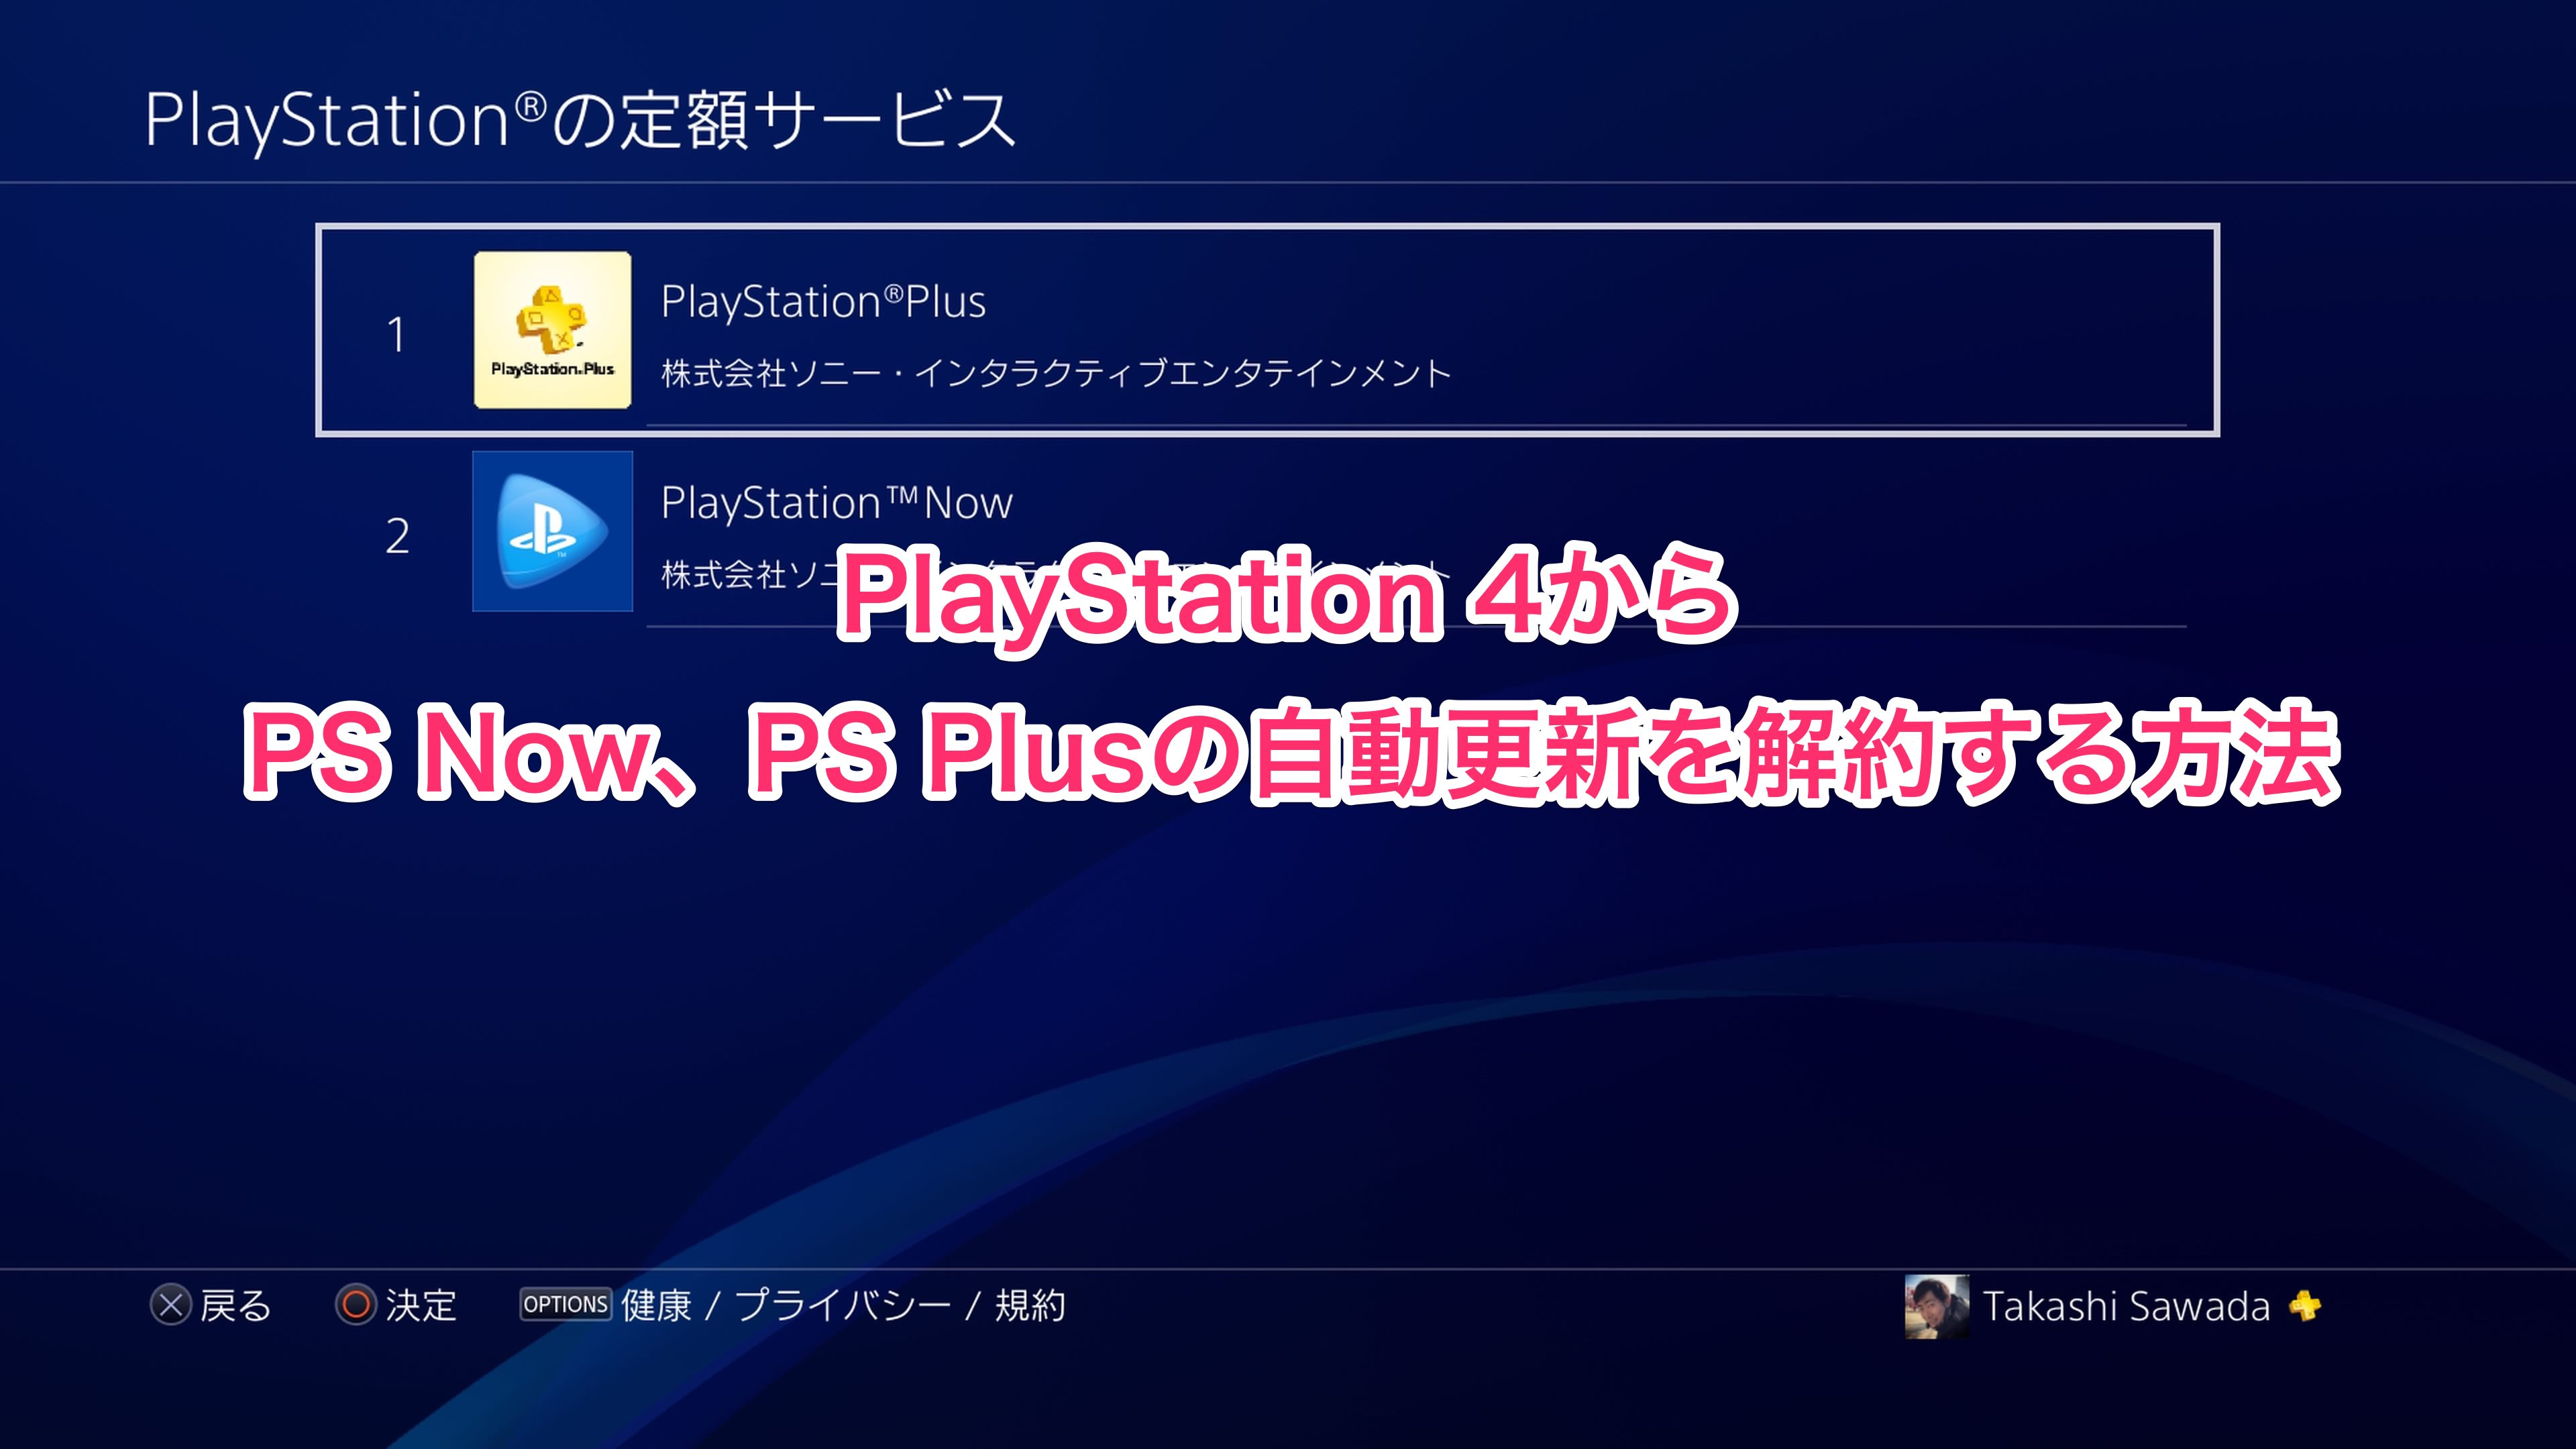 How to cancel auto update psnow and psplus for playstaton4 1